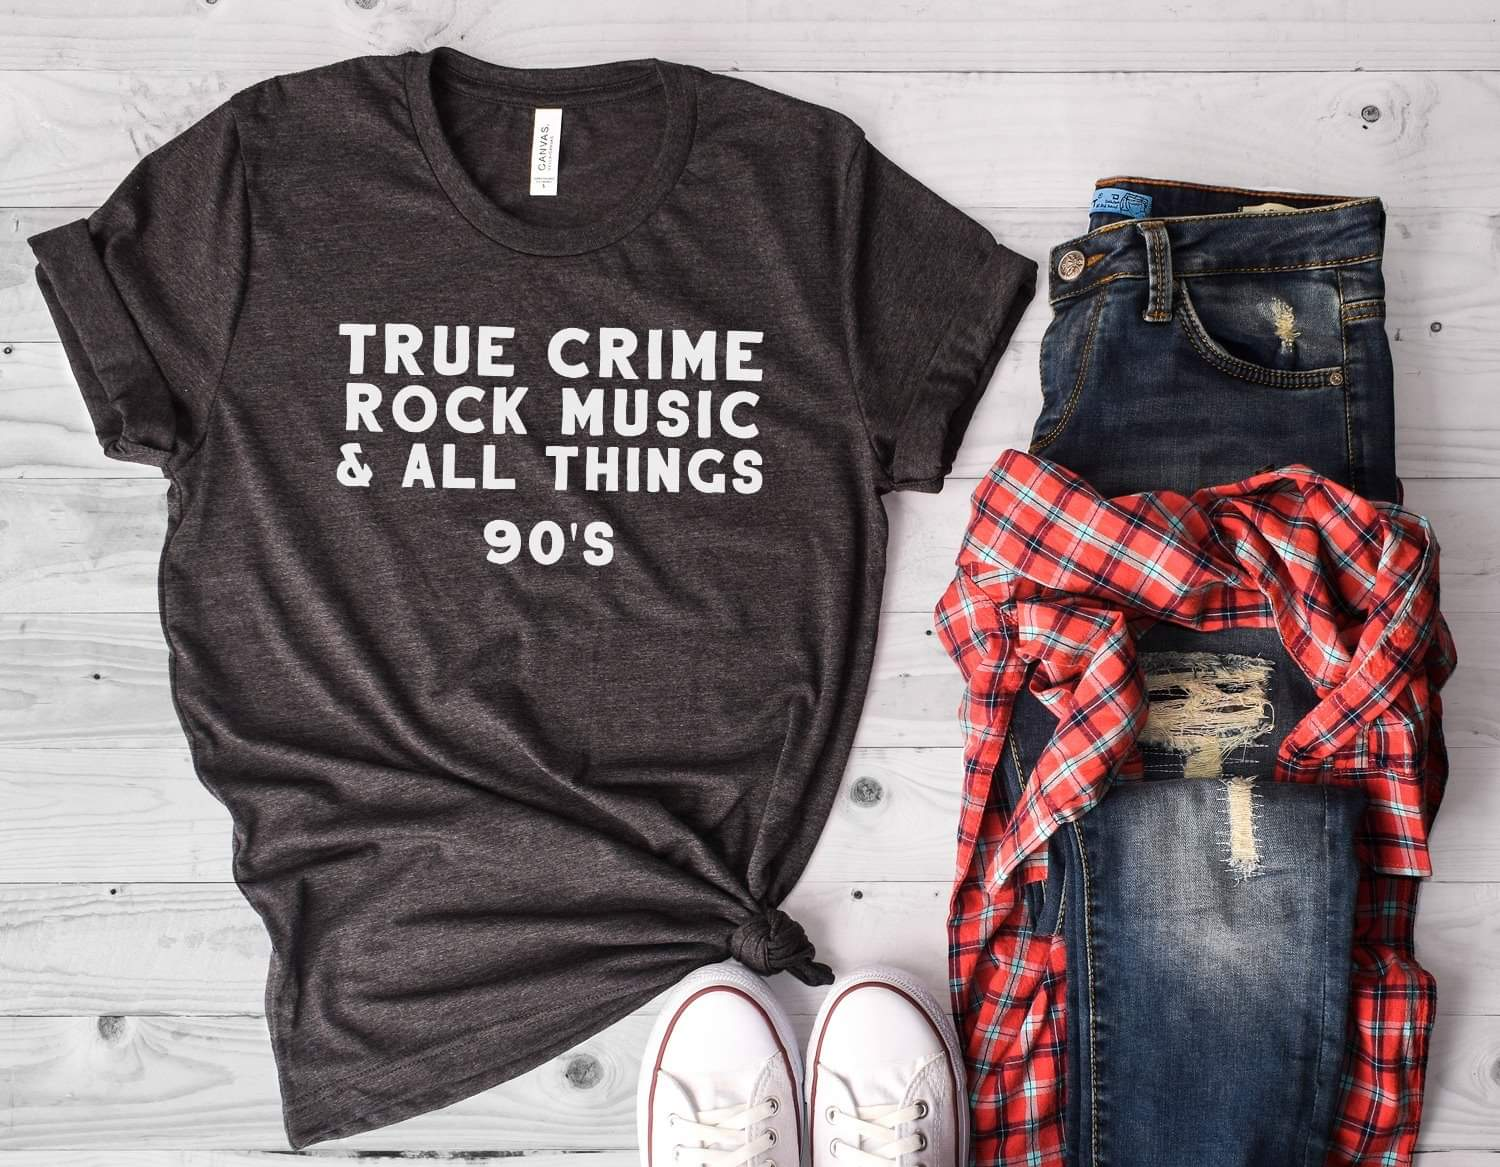 True Crime Rock Music 90s Adult Tee Shirt